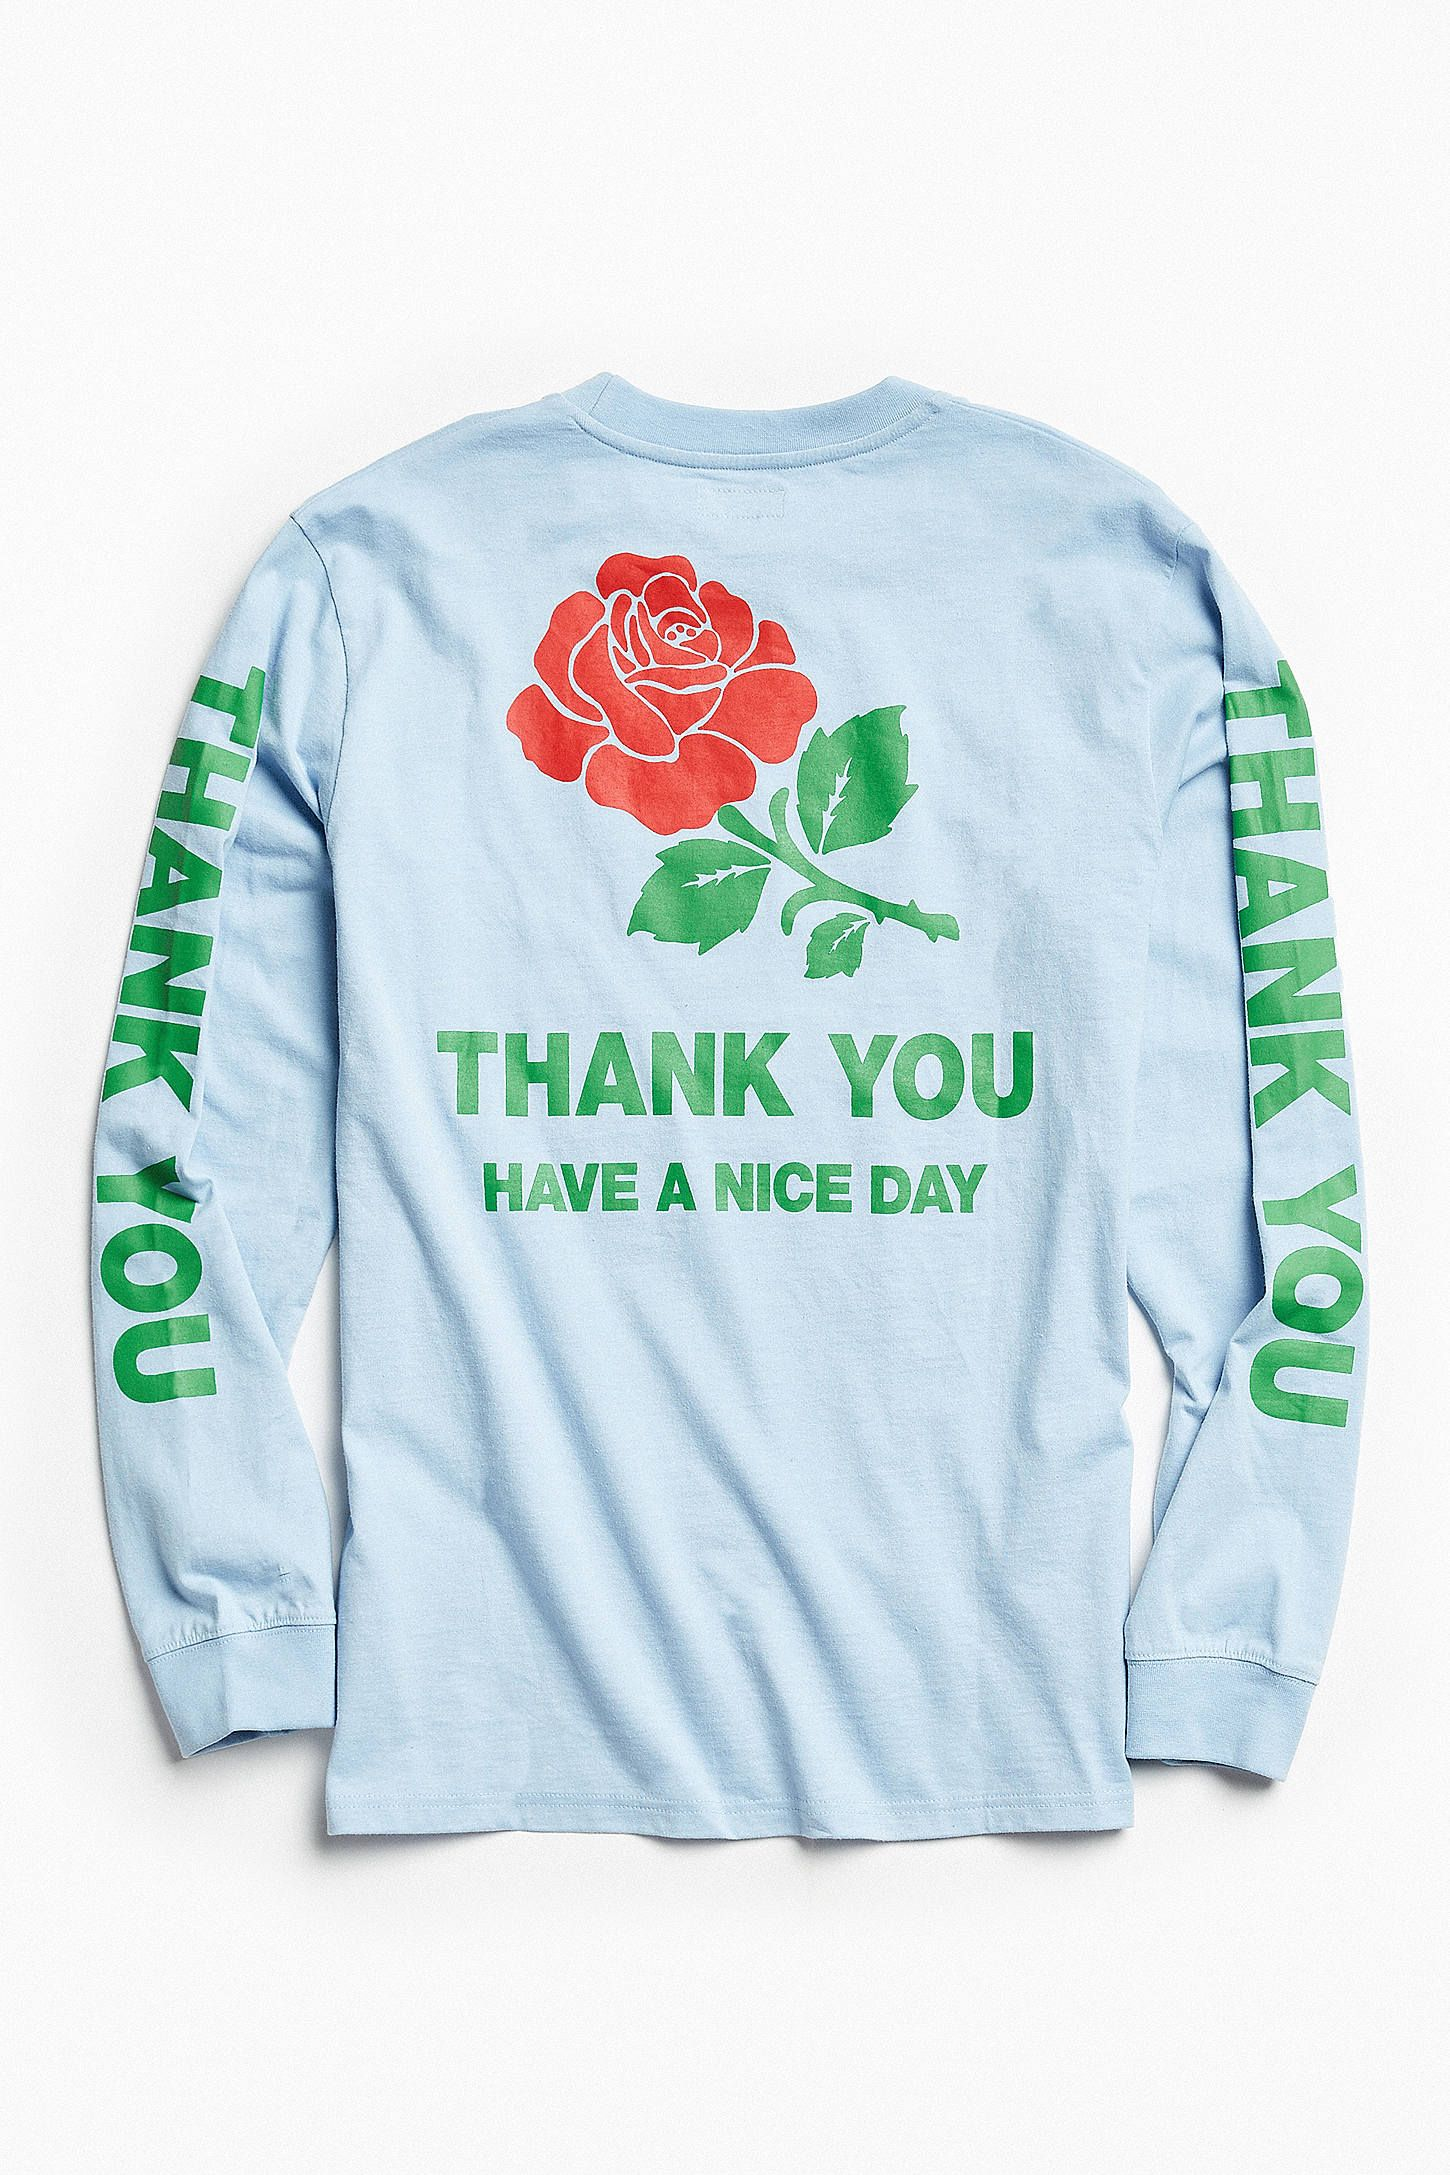 Chinatown Market Thank You Rose Long Sleeve Tee   Long